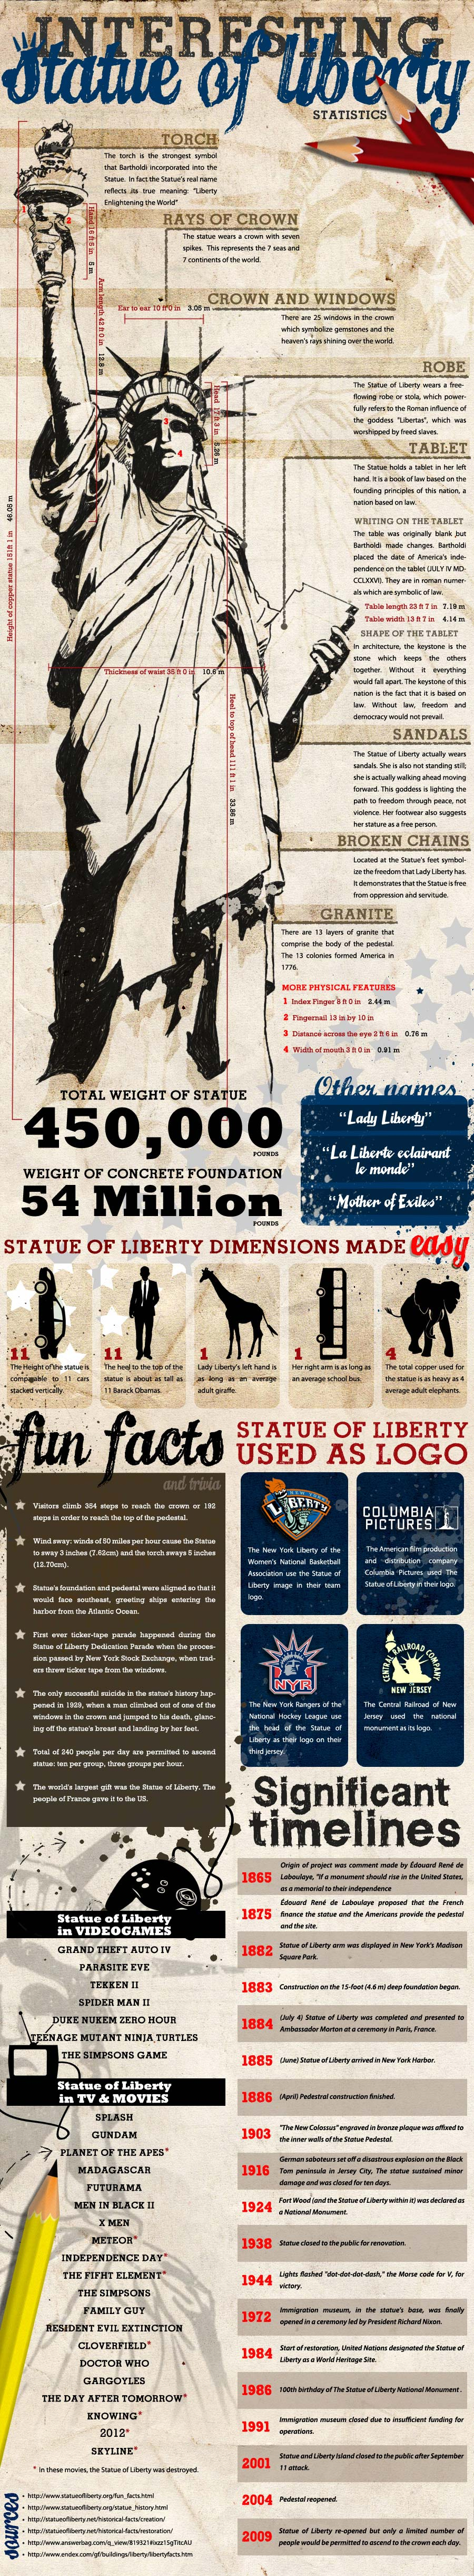 Interesting Statue of liberty infographic